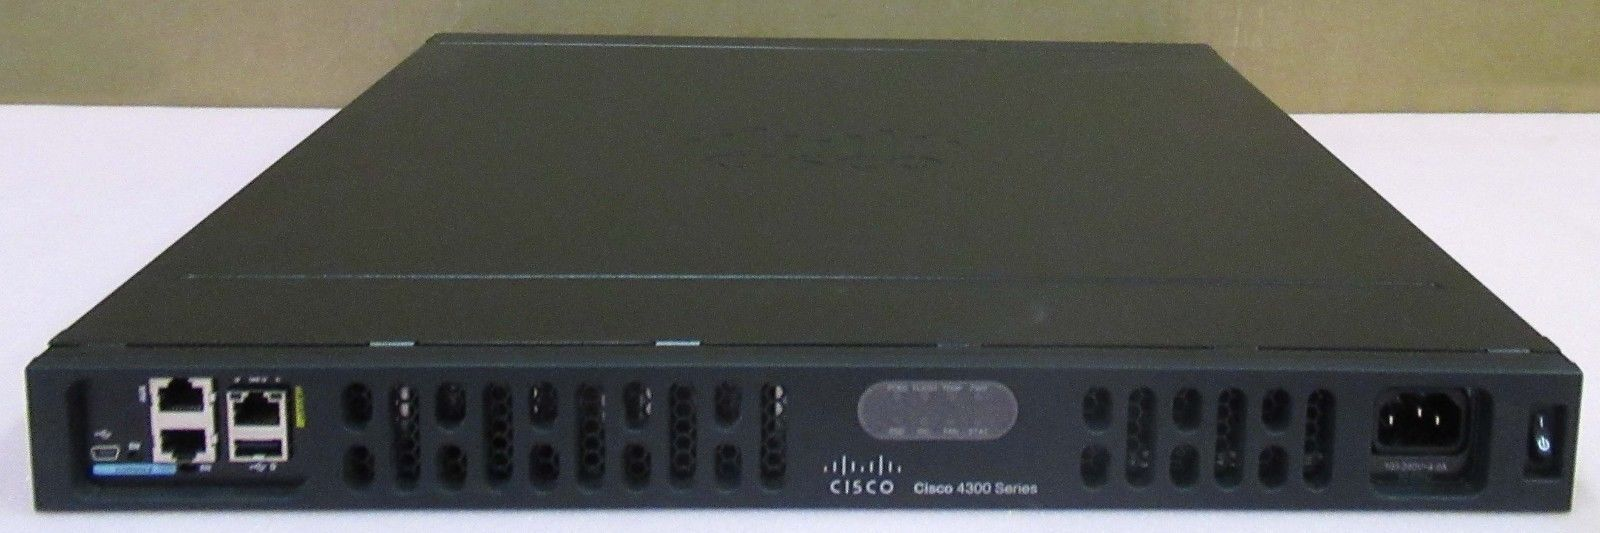 Cisco ISR4331/K9 4000 Router 1U 3-Port Modular Integrated Services Router  (ISR)